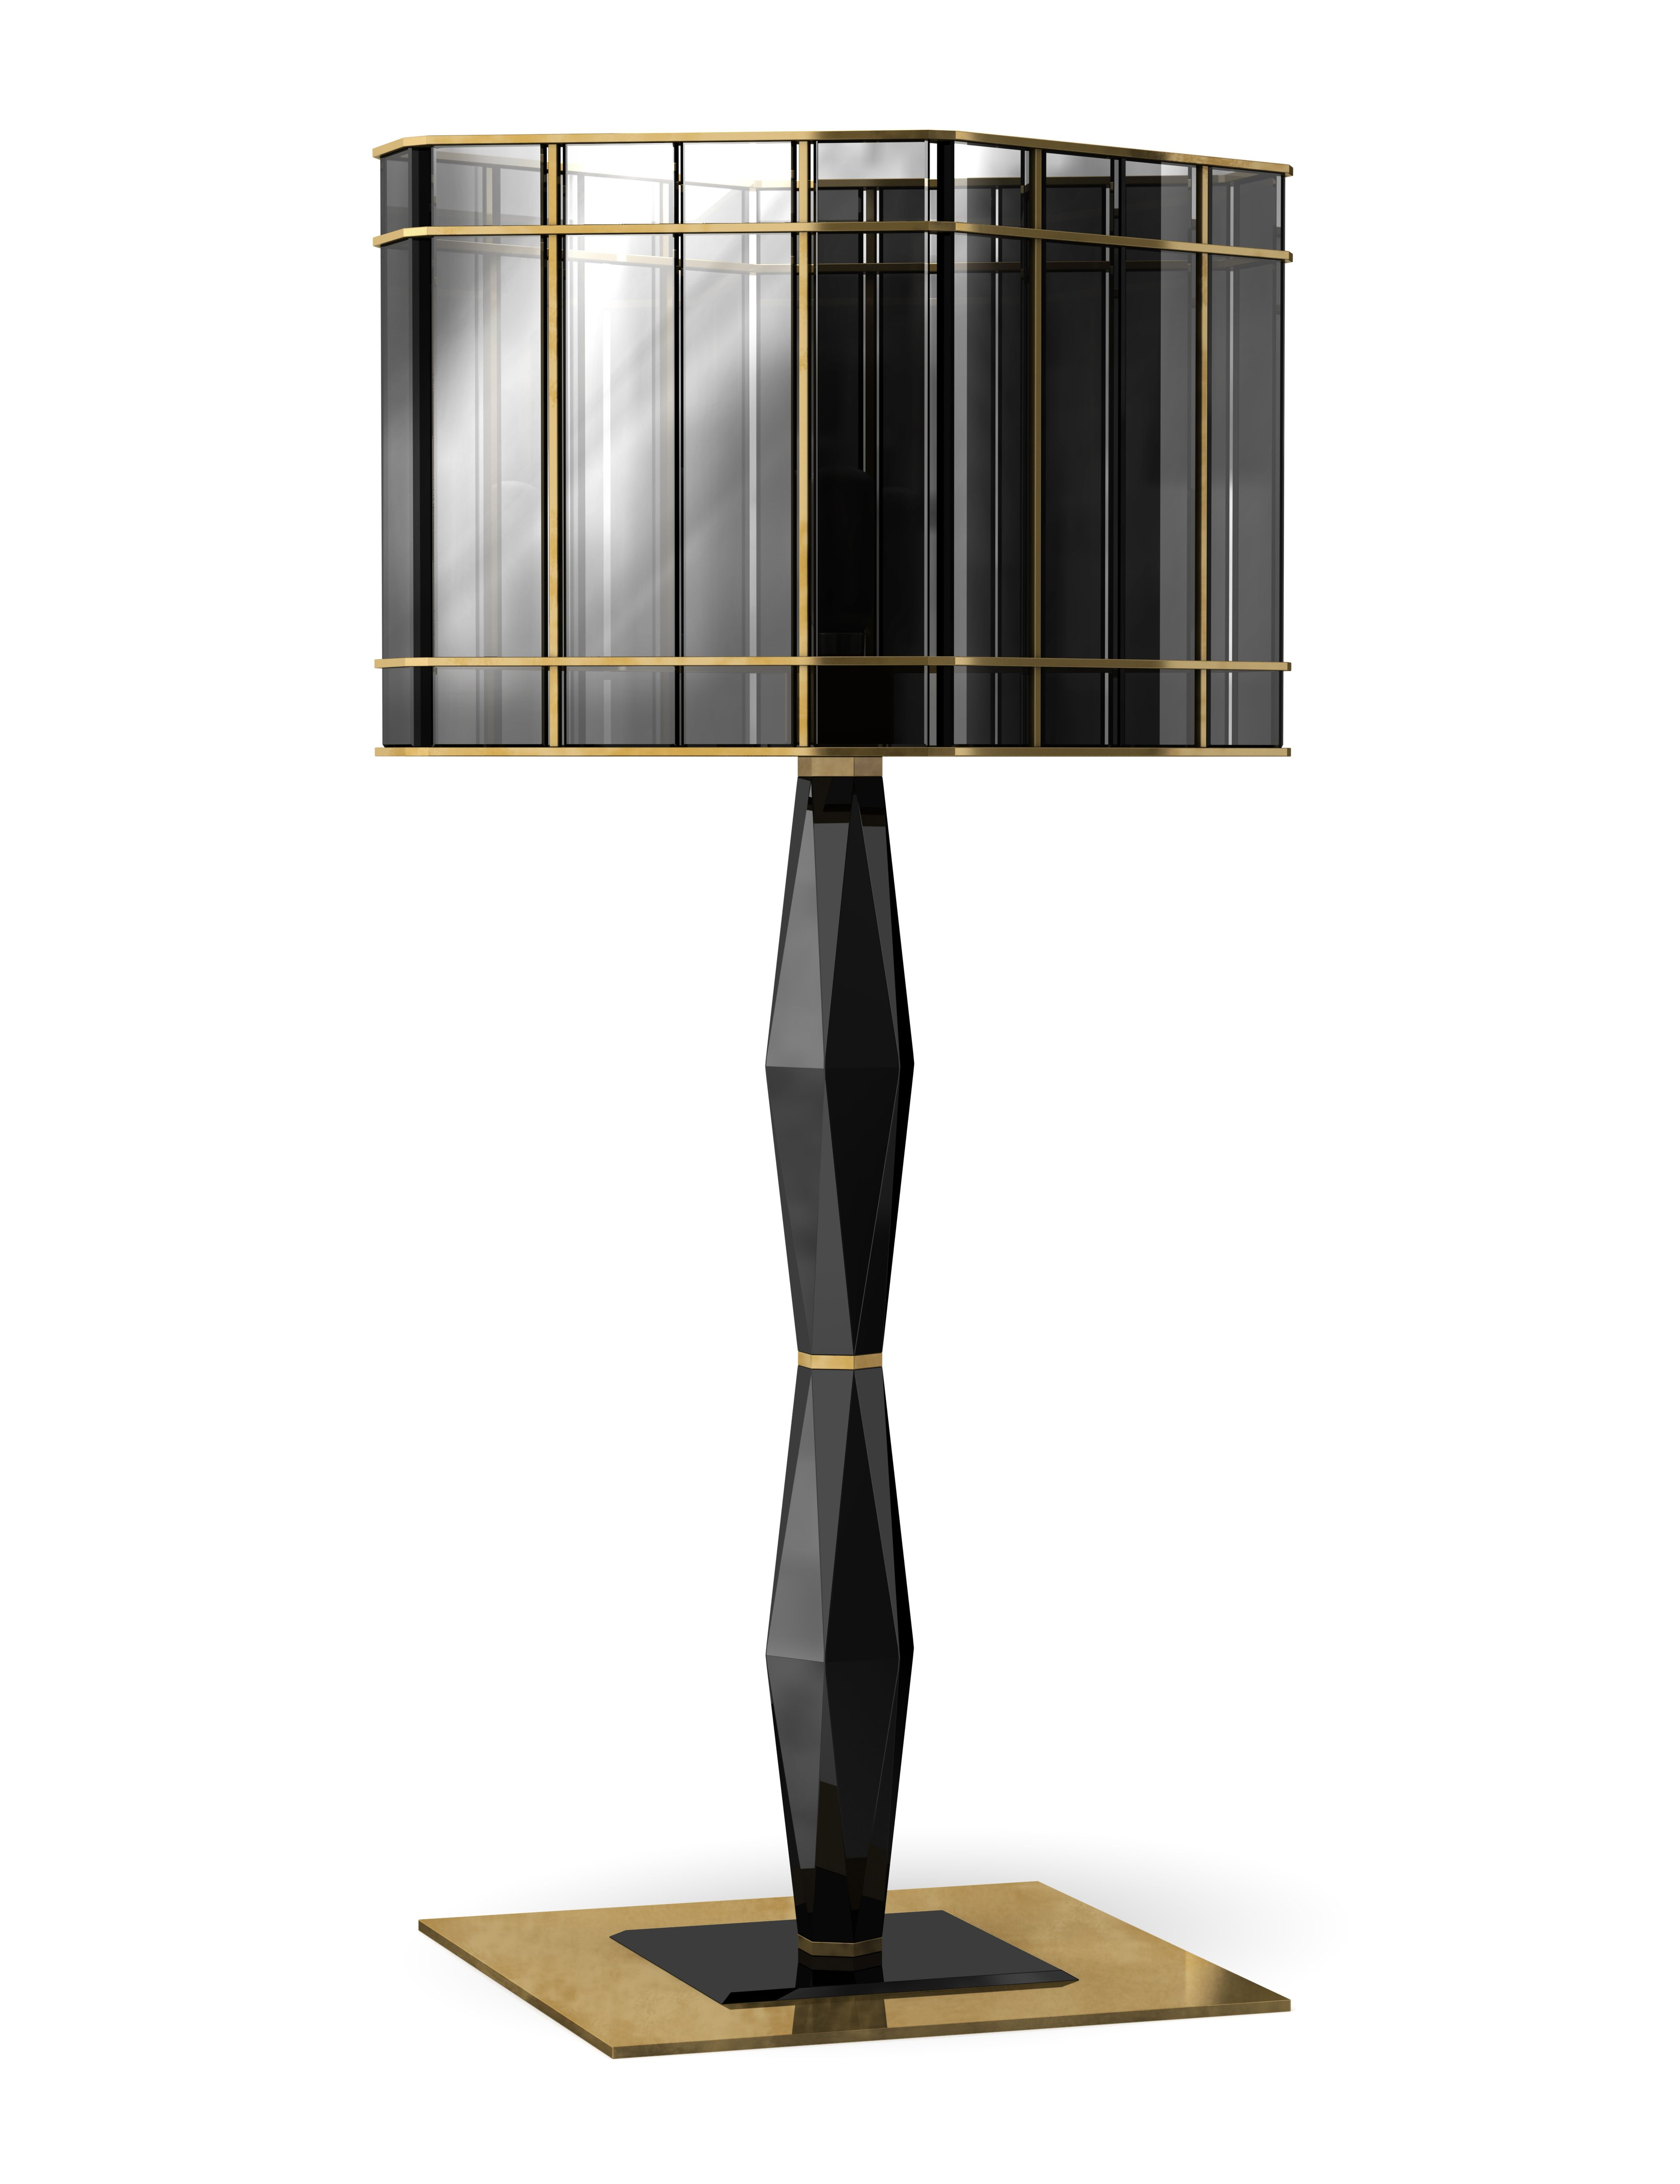 Italian Lighting Available In Different Finishes Lamp Light Table Lamp Lighting Lamp